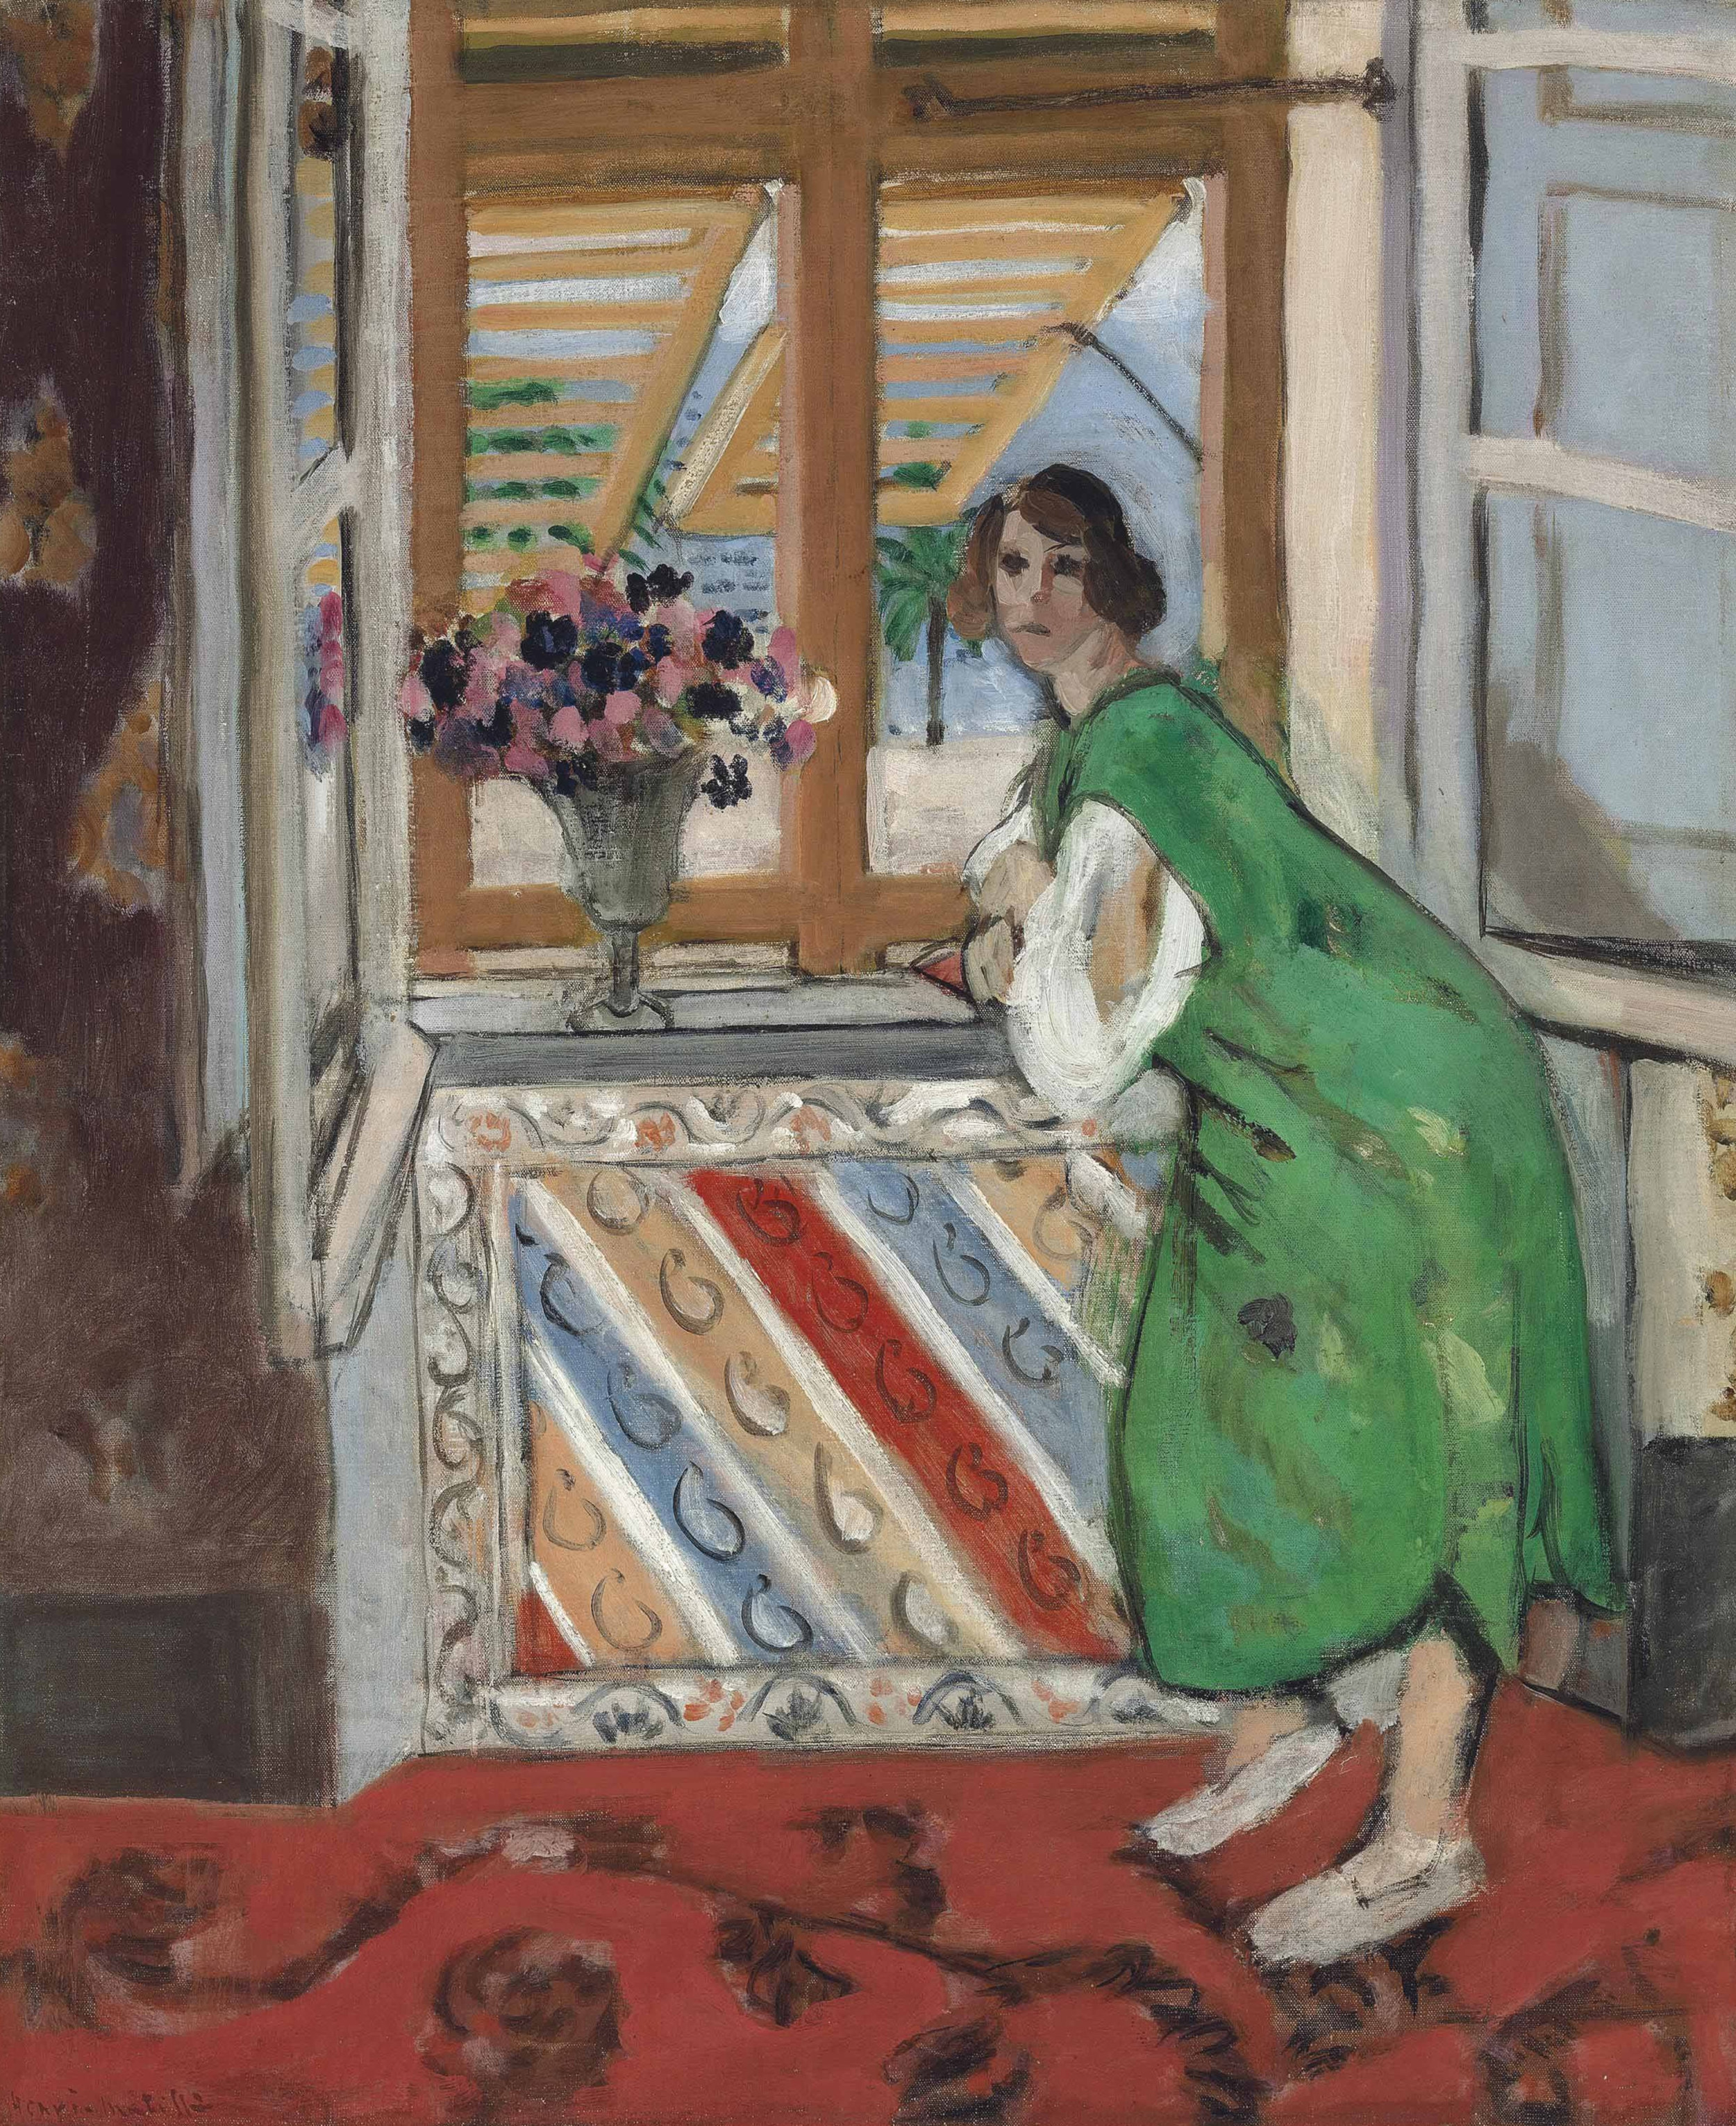 Henri Matisse, Jeune fille a la mauresque, robe verte, 1921, Oil on canvas, 66 x 55 cms (26 x 21 5/8 ins)